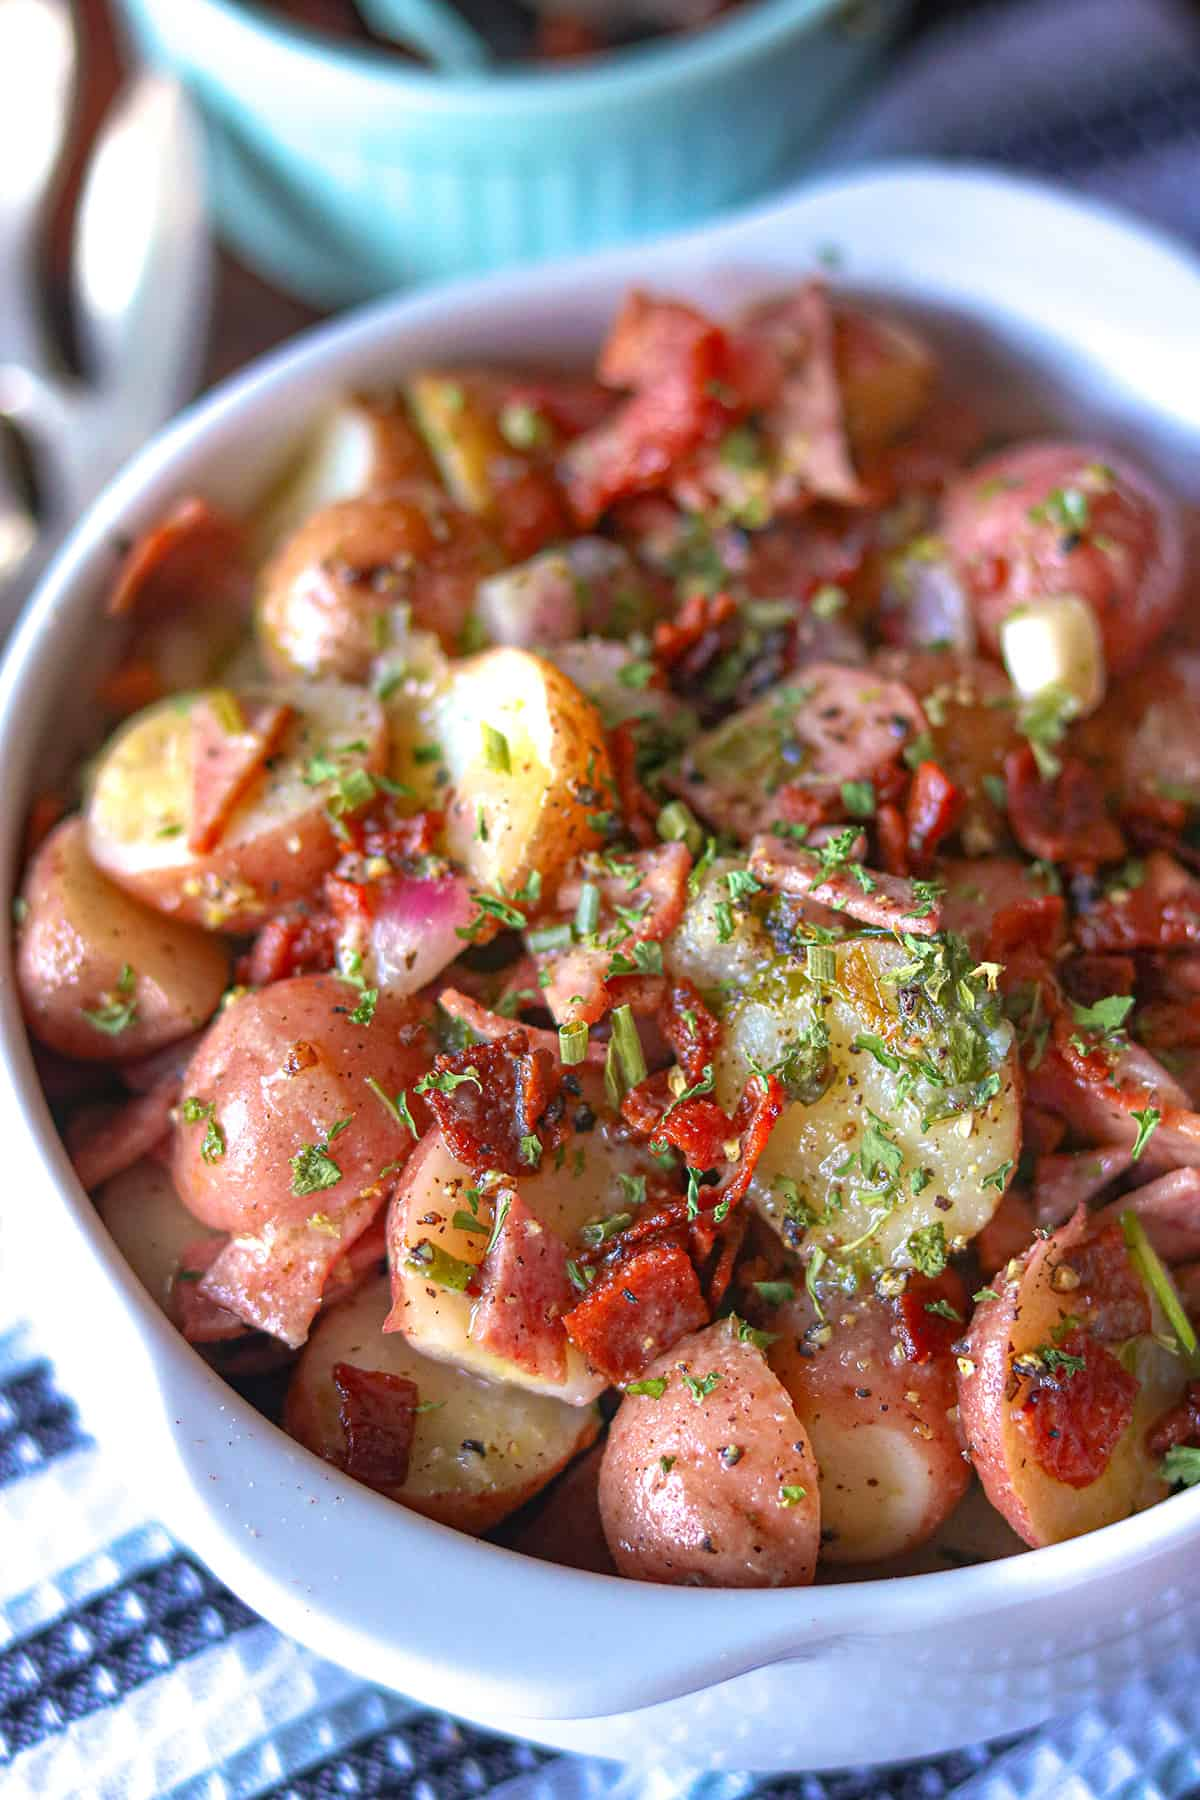 German potato salad topped with herbs and bacon